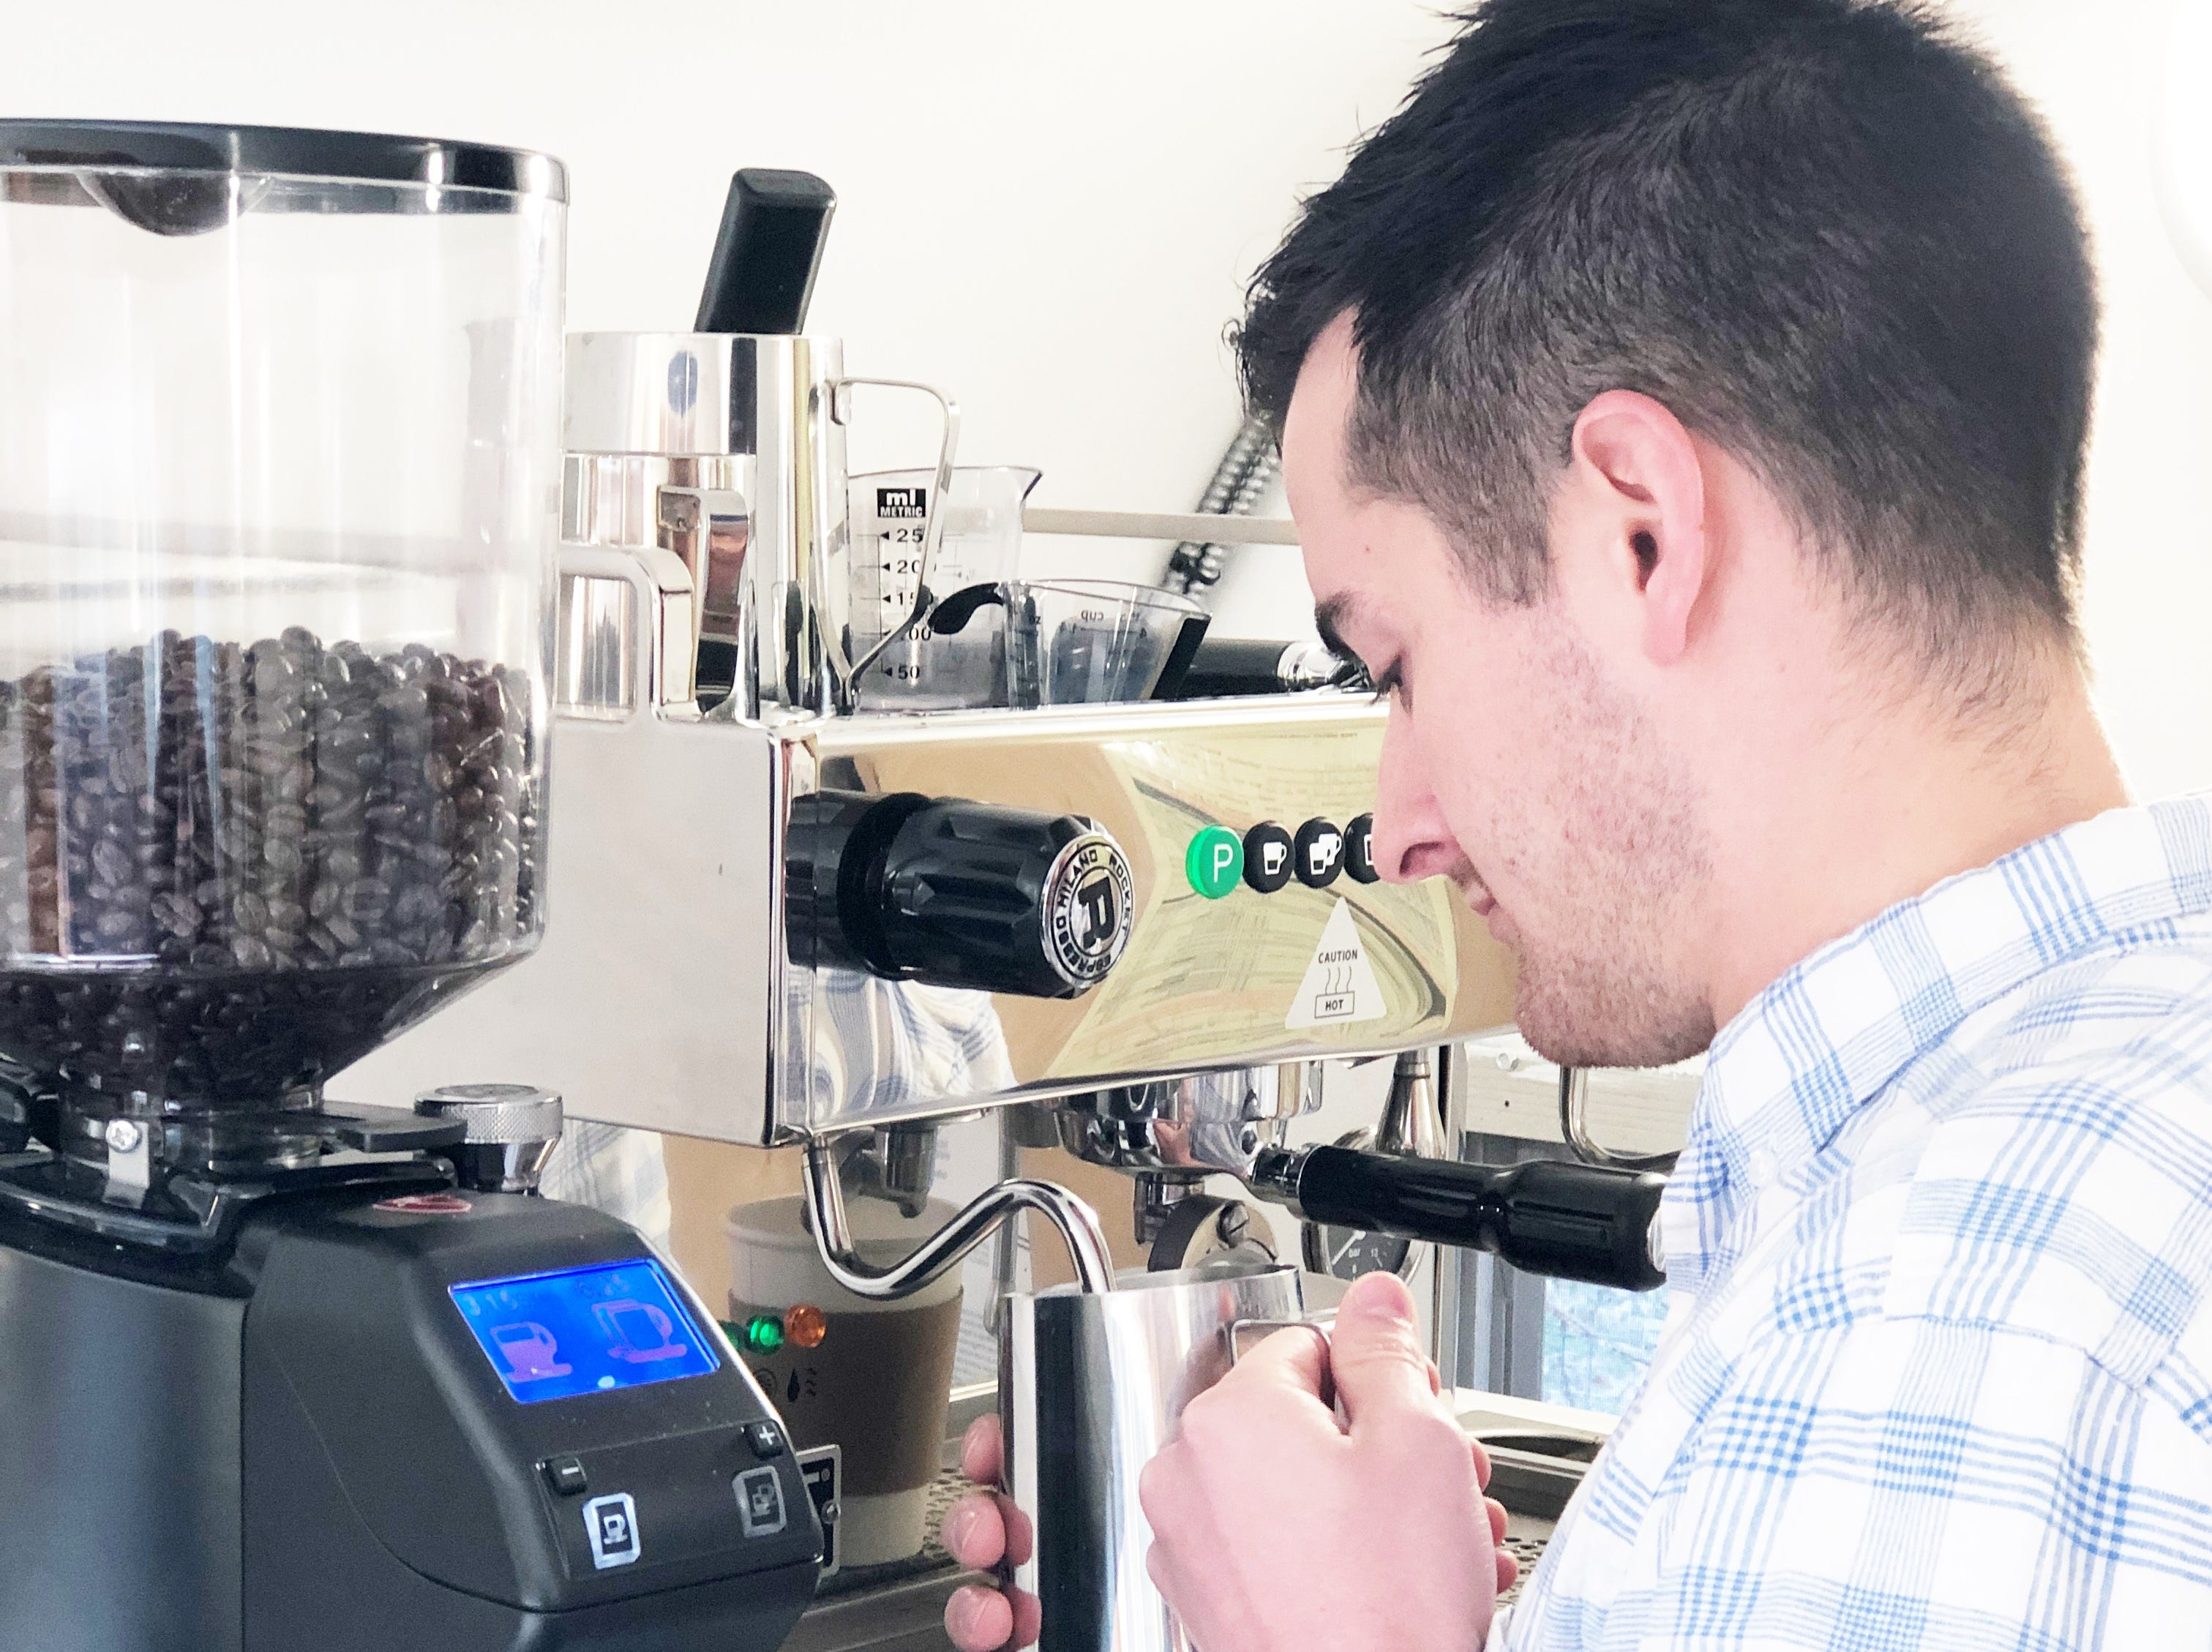 """""""Our espresso machine produces a quality coffee,"""" said Collin Napier. """"It's an Italian made Rocket Boxer Espresso machine. It has a really big boiler, and two steam wands to froth milk in two pitchers at the same time and an eight-liter boiler to crank out drinks."""""""